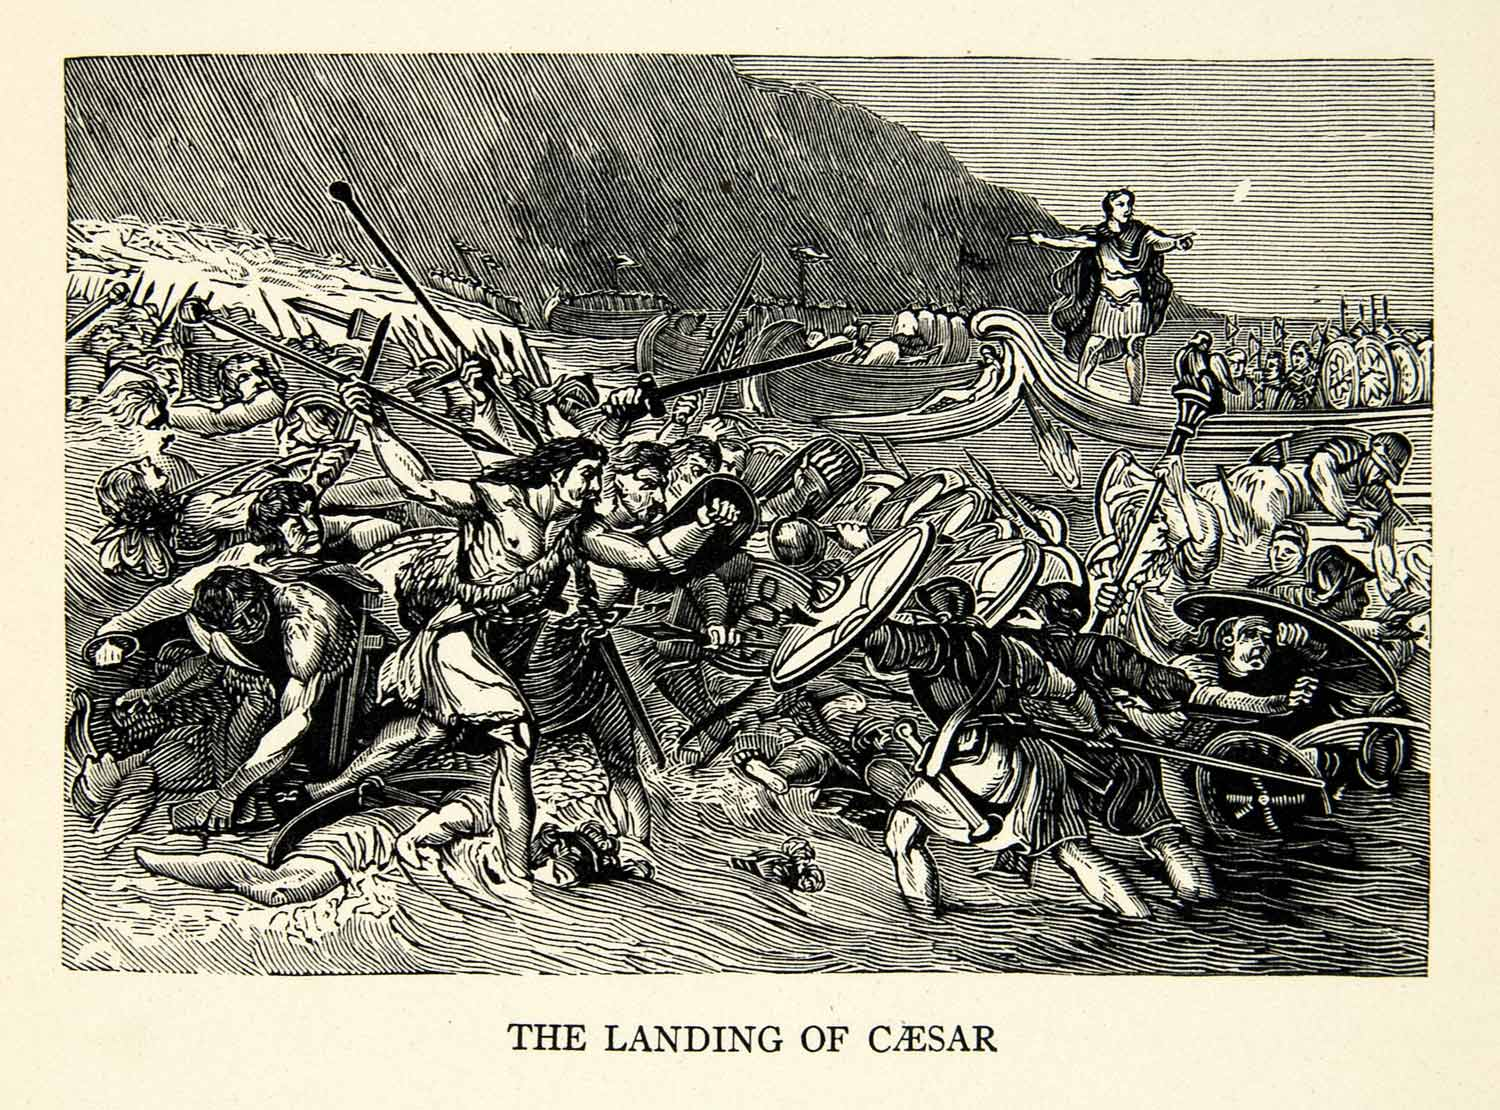 the invasion of britain by the roman army under emperor claudius